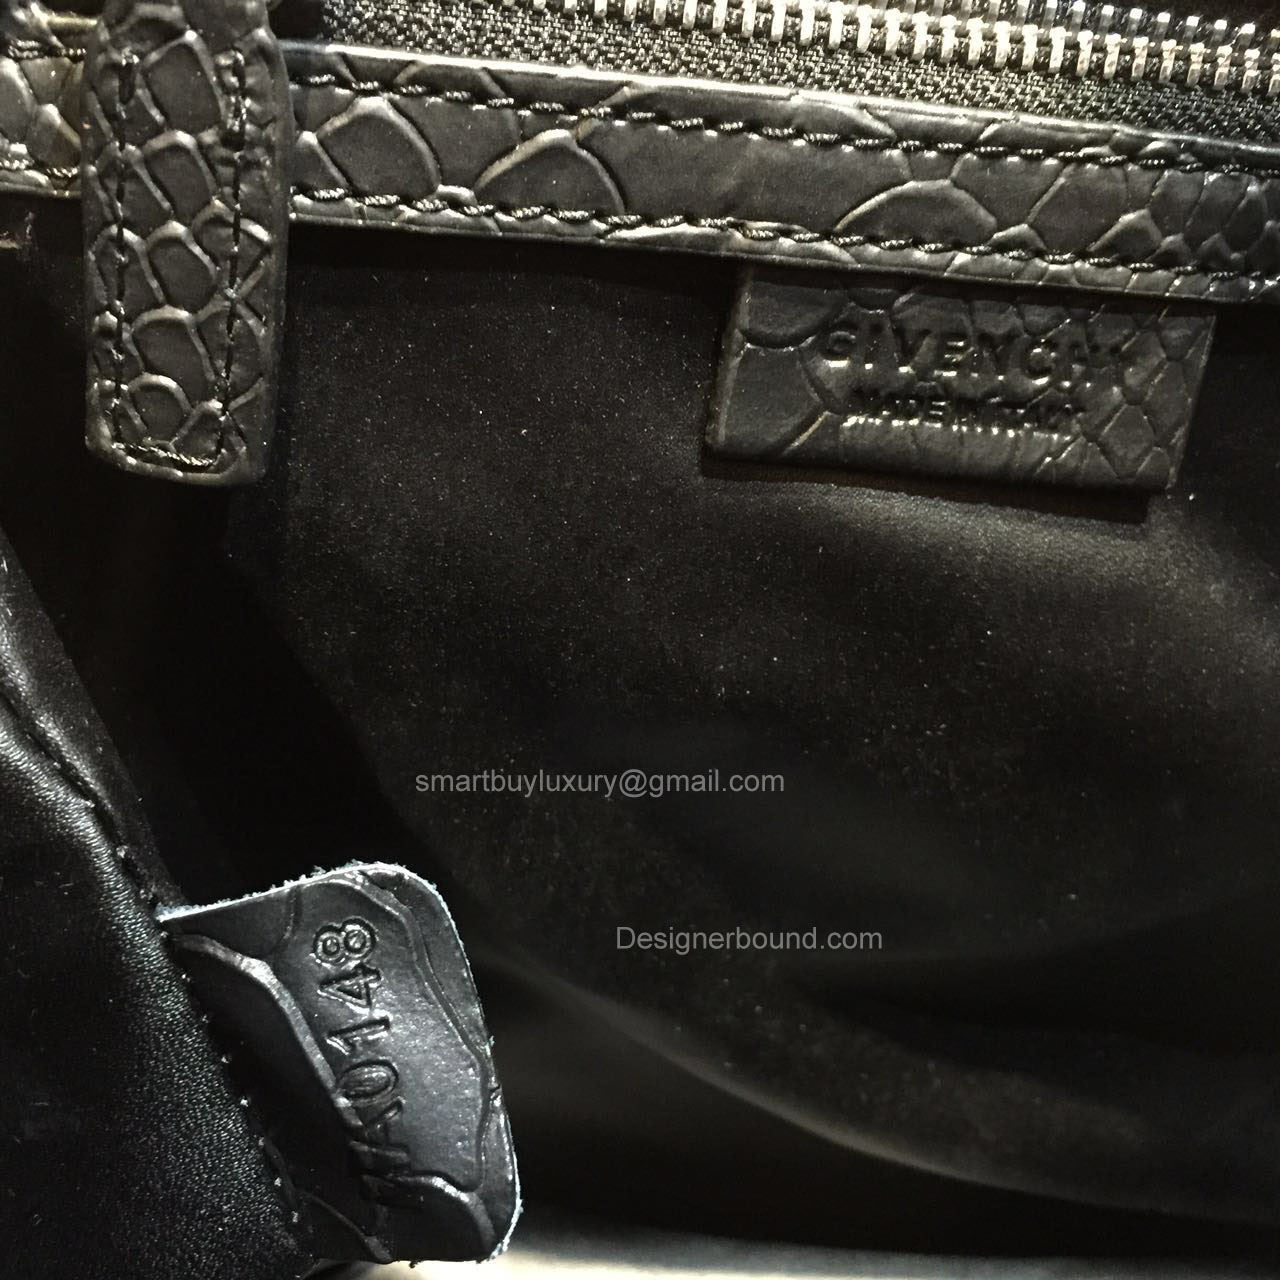 Givenchy Medium Antigona Bag in Black Python and Patent Leather 285173L.  GIVENCHY ... f64e22bdaf38f